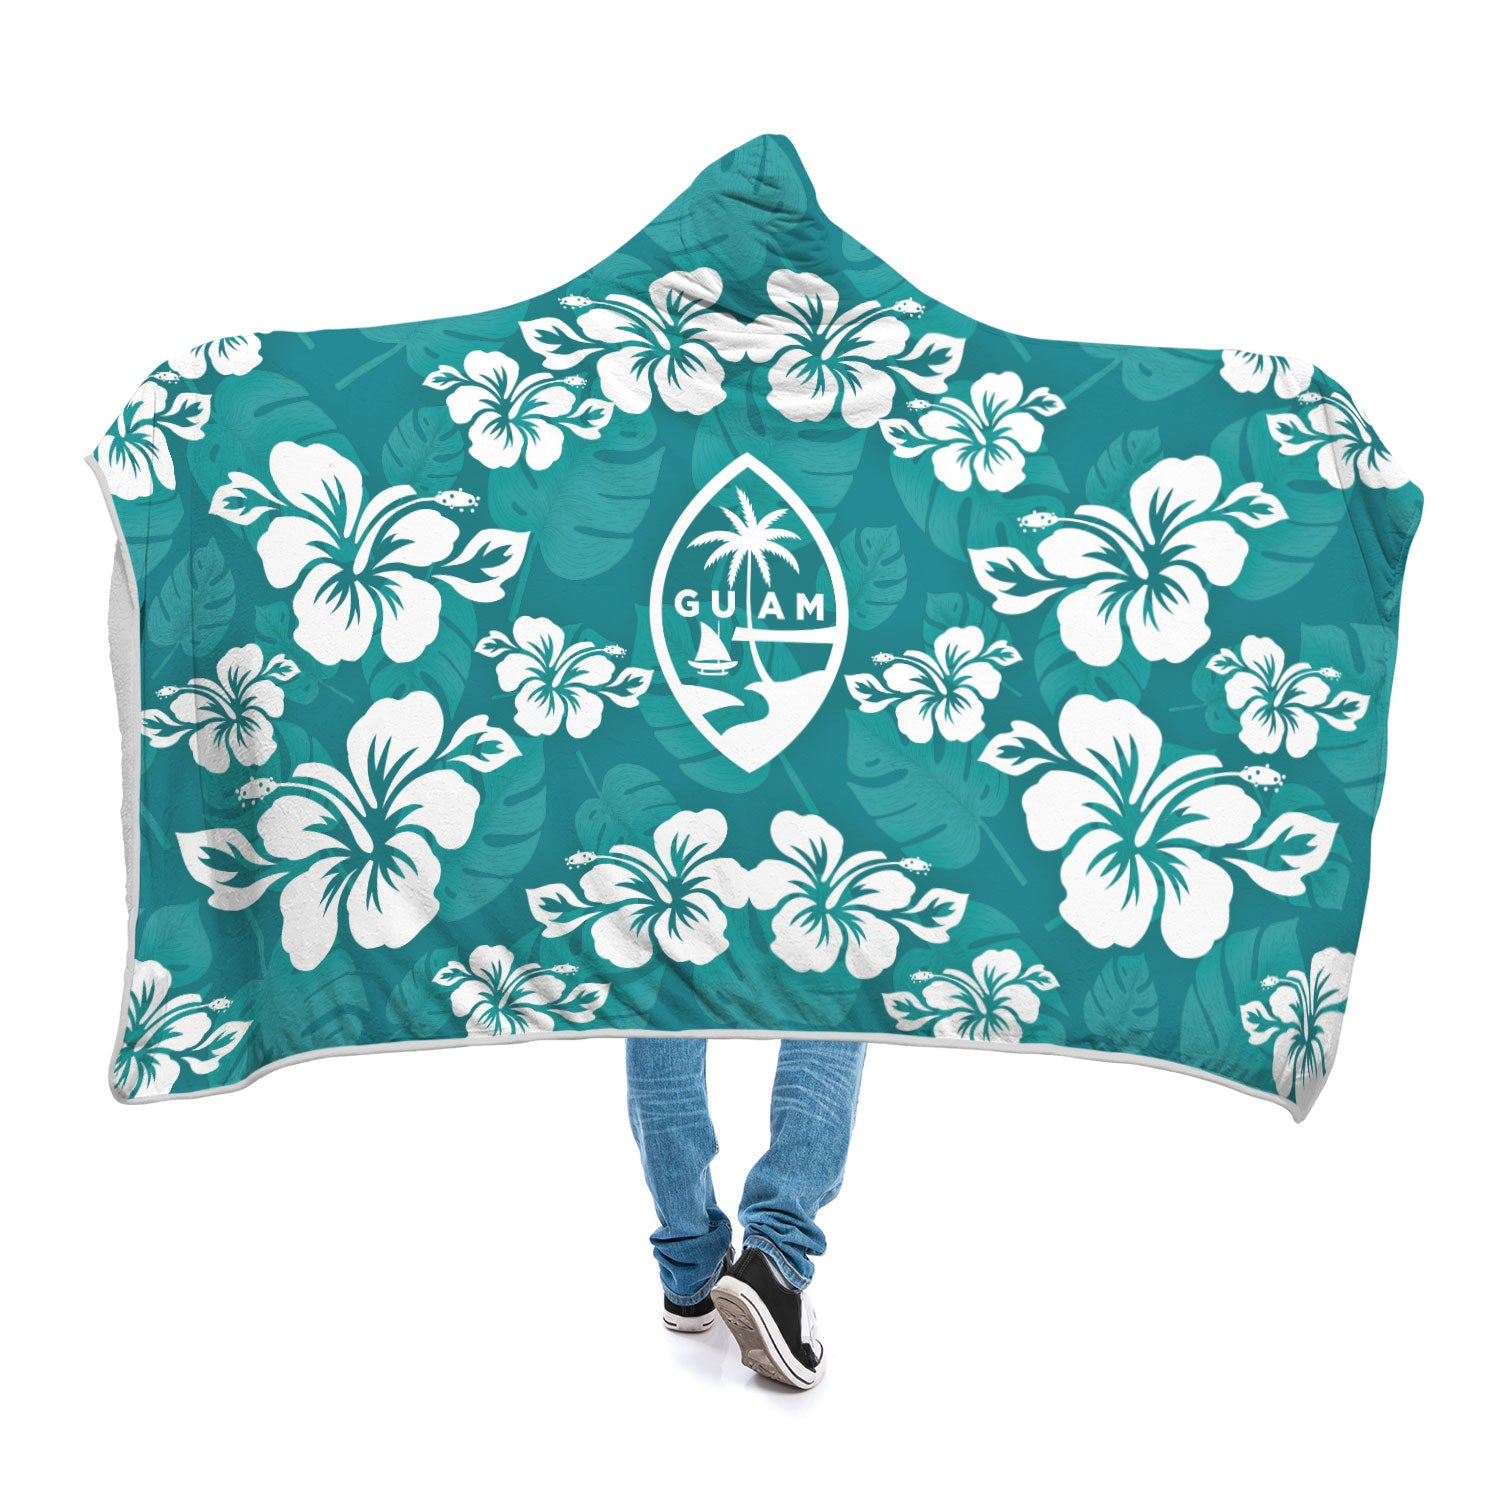 Guam Seal Teal Hibiscus Chamorro Custom Sherpa Hooded Blanket